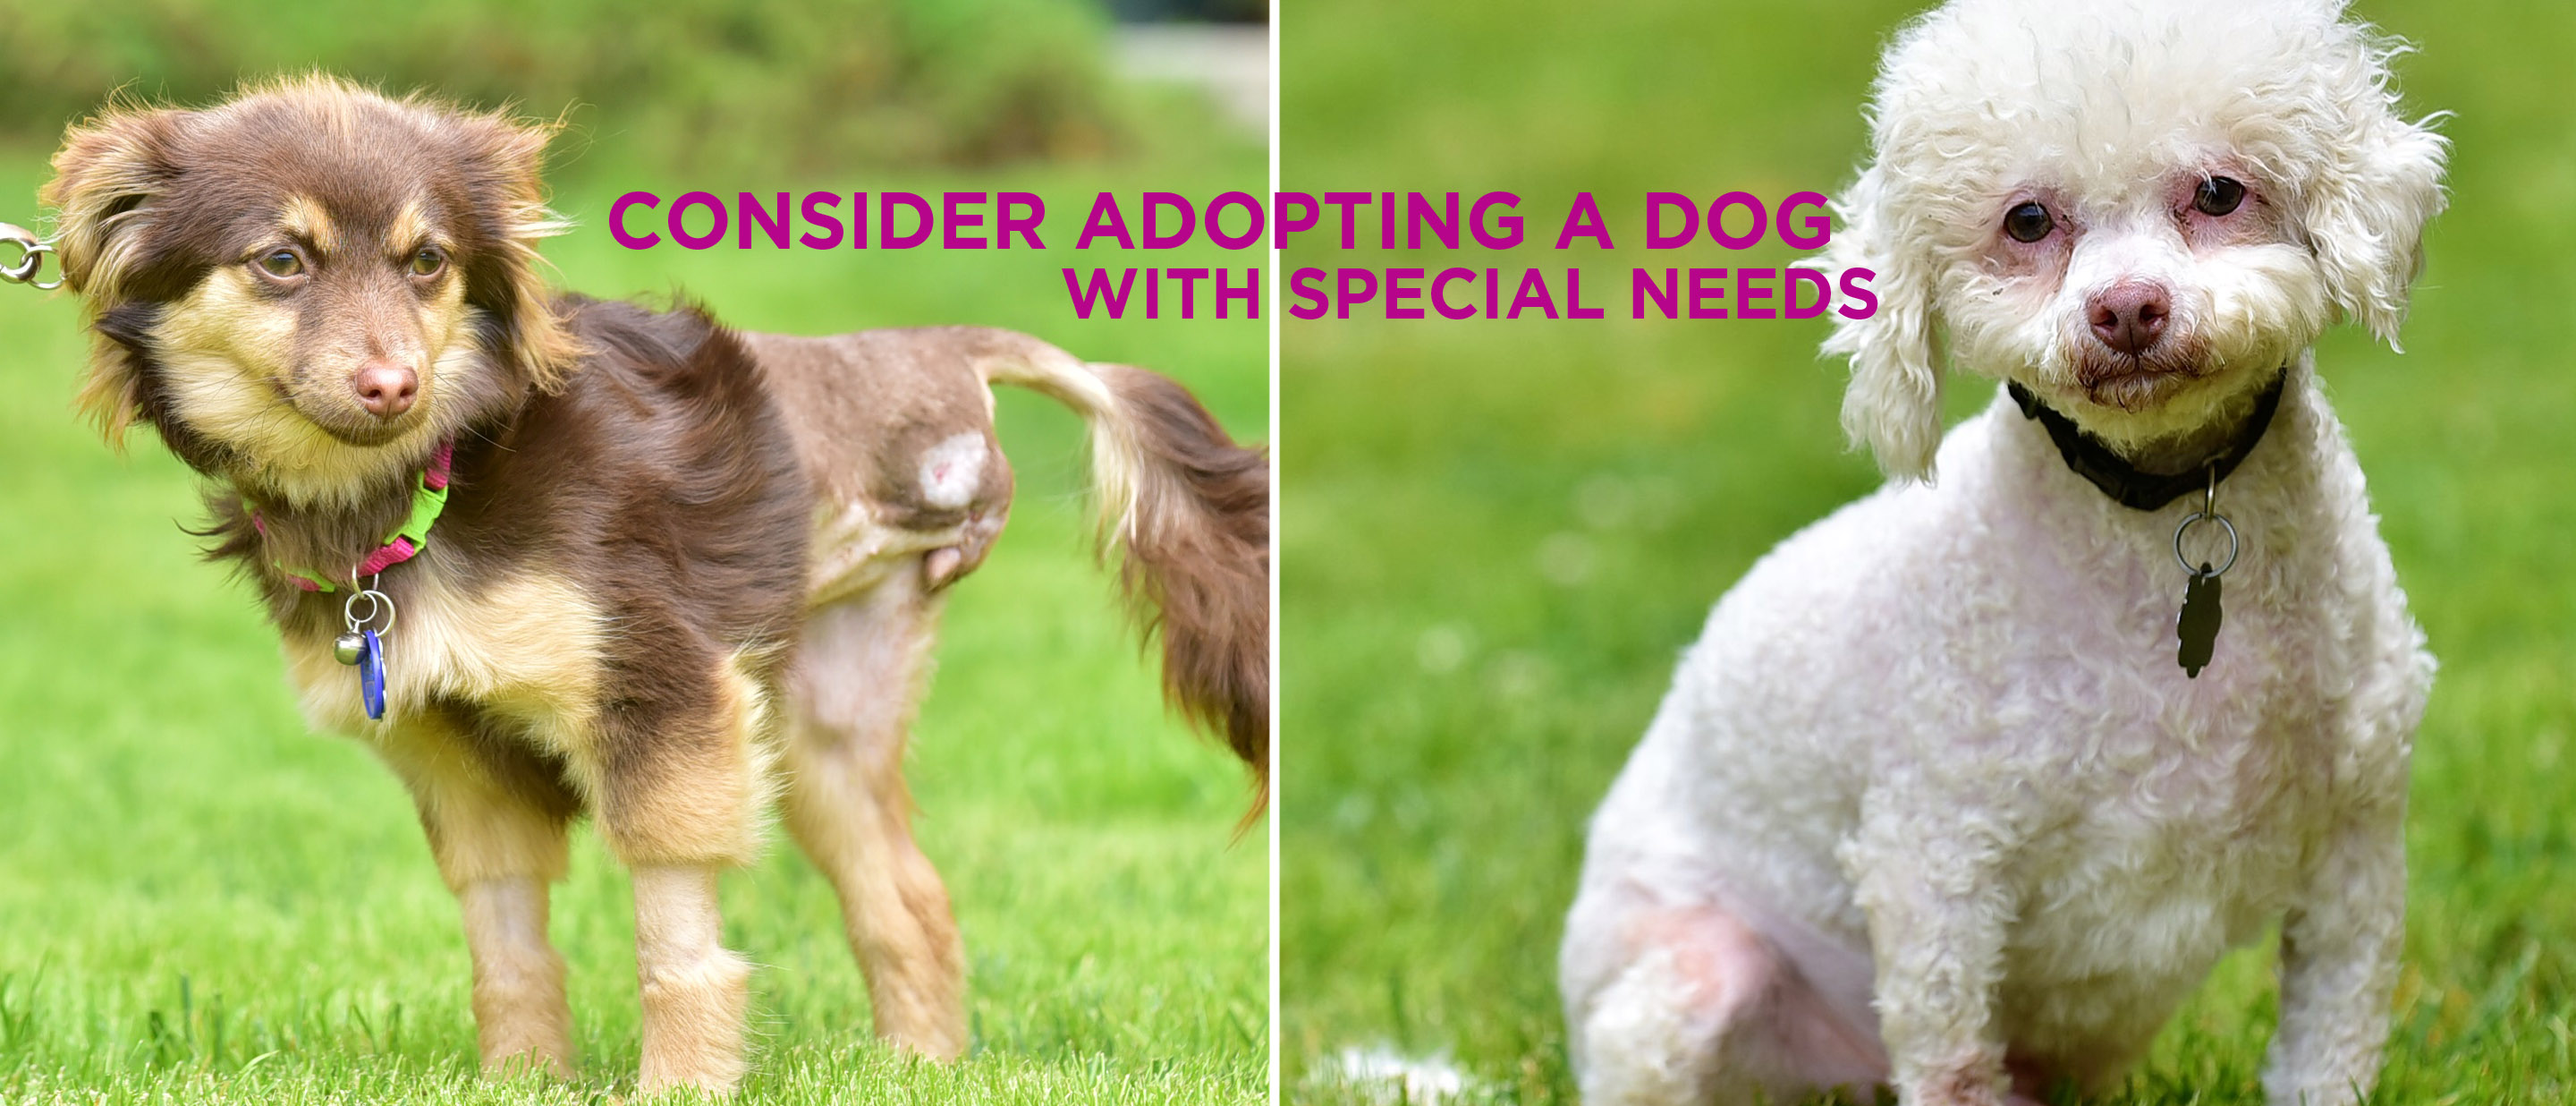 Consider adopting a dog with special needs